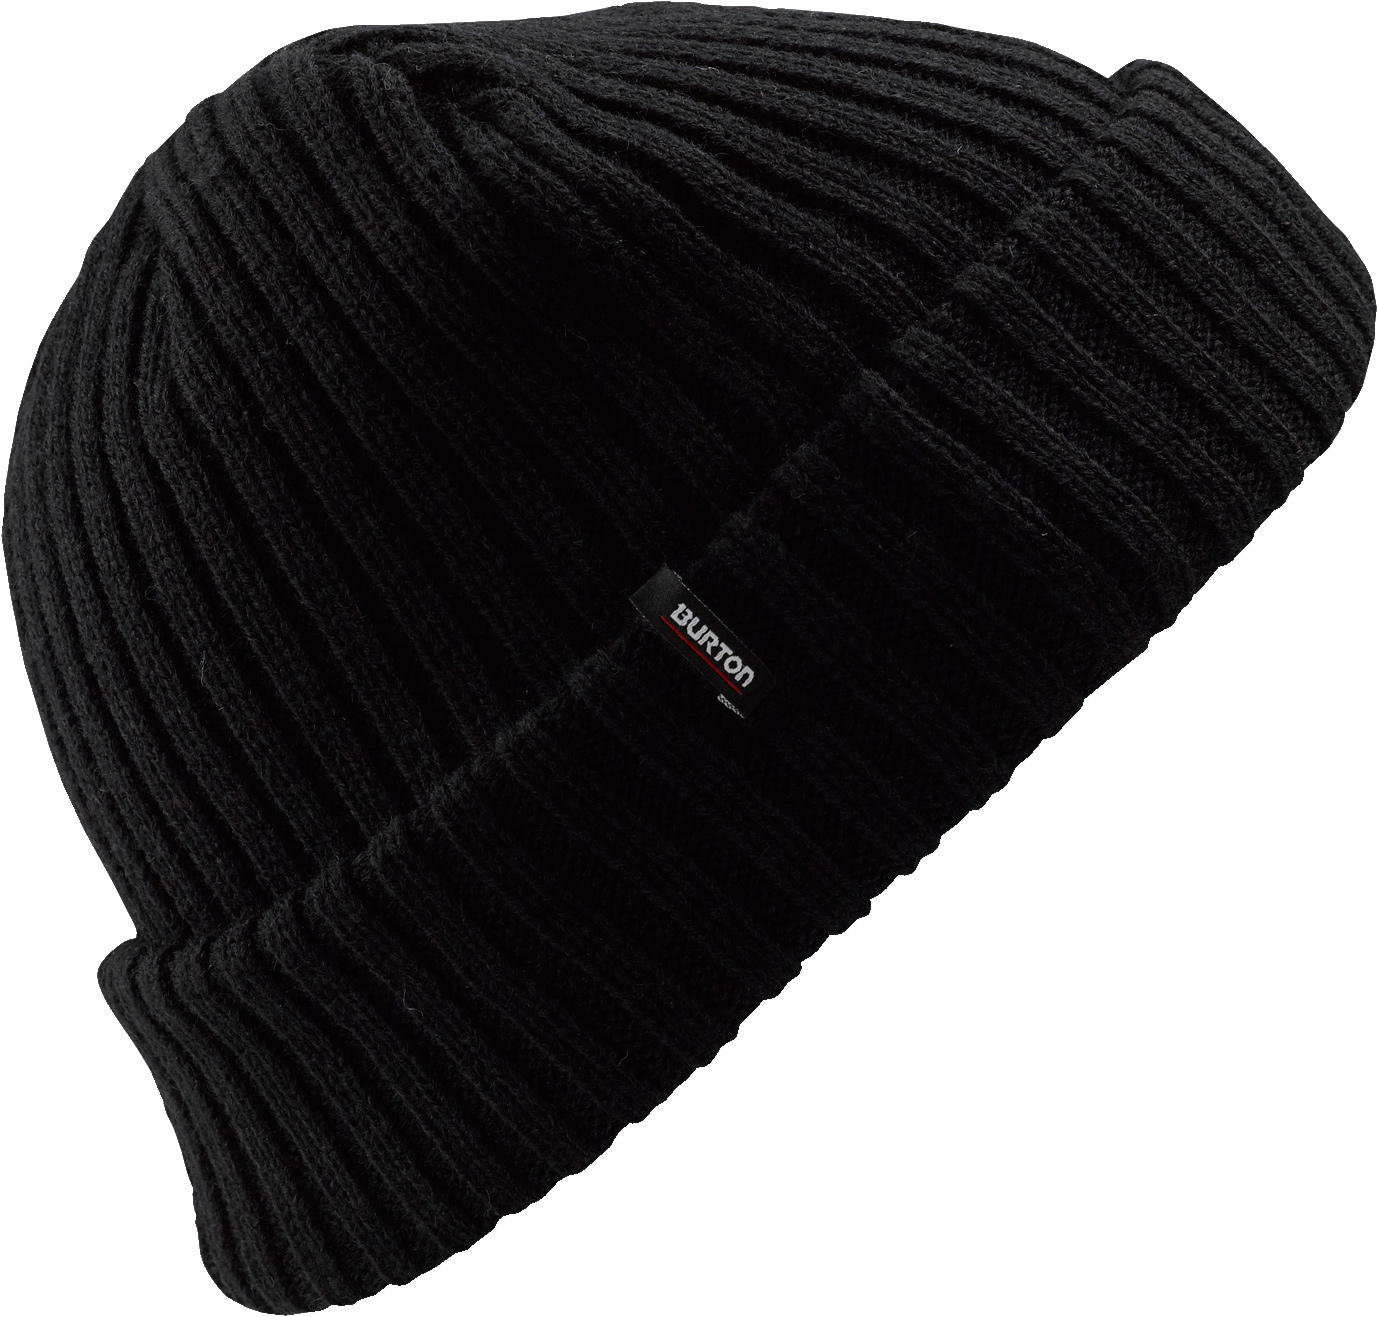 Snowboard Key Features of the Burton Gringo Beanie: 100% Acrylic Basic Fold Up with Skully Fit - $21.00